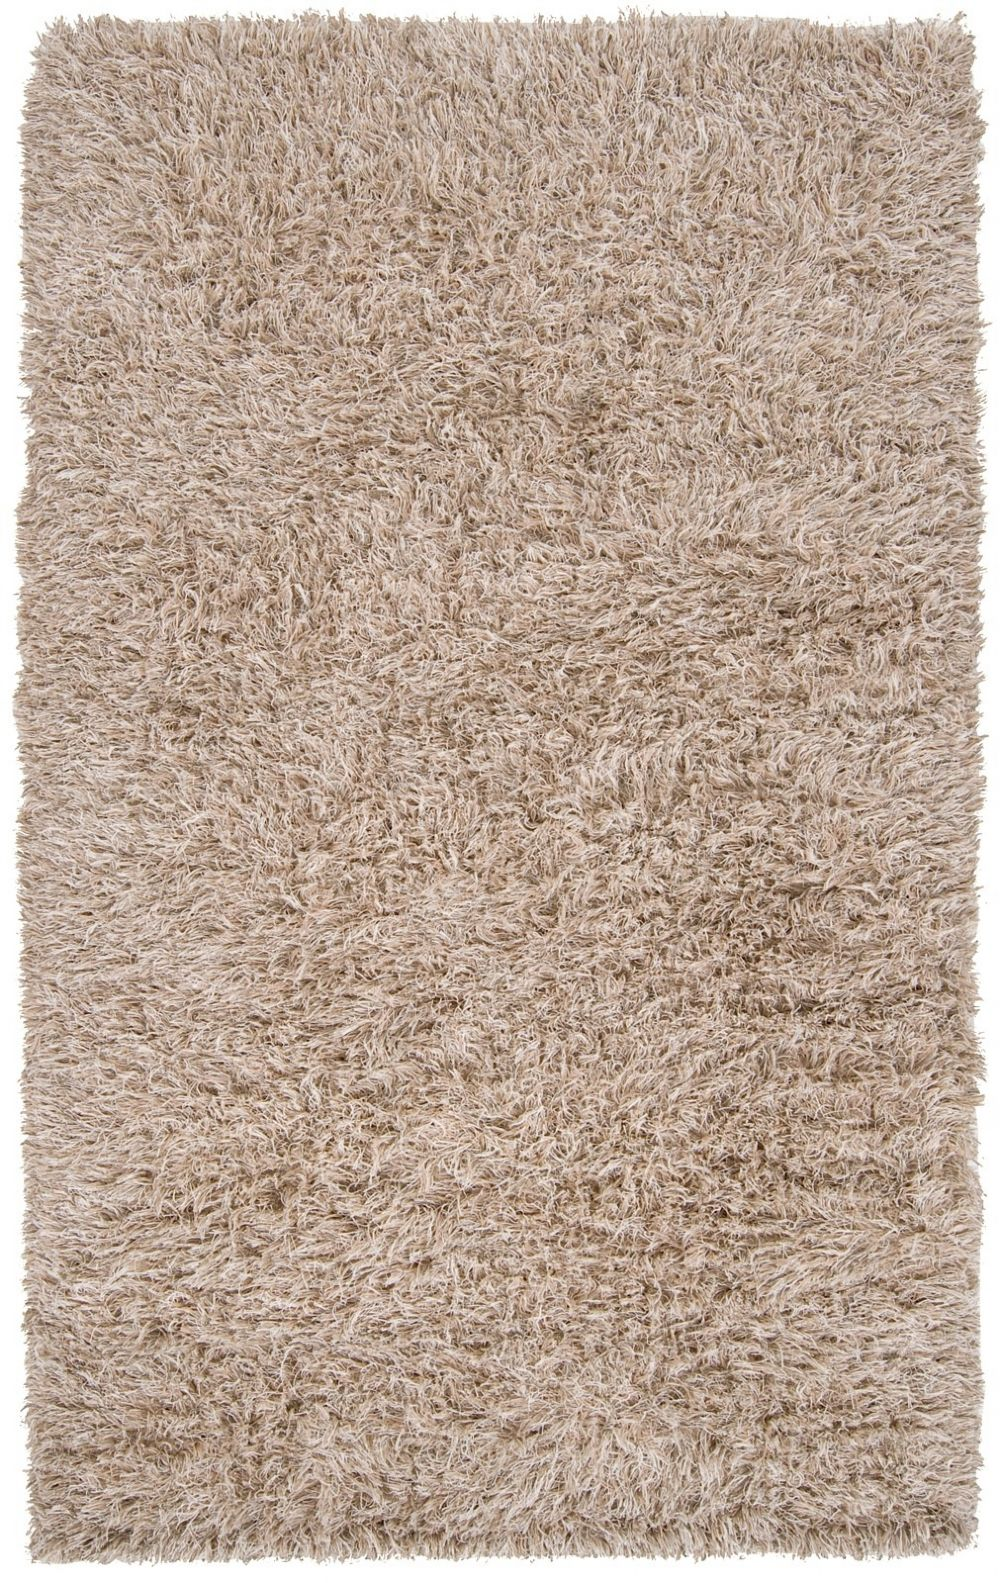 surya houdini shag area rug collection